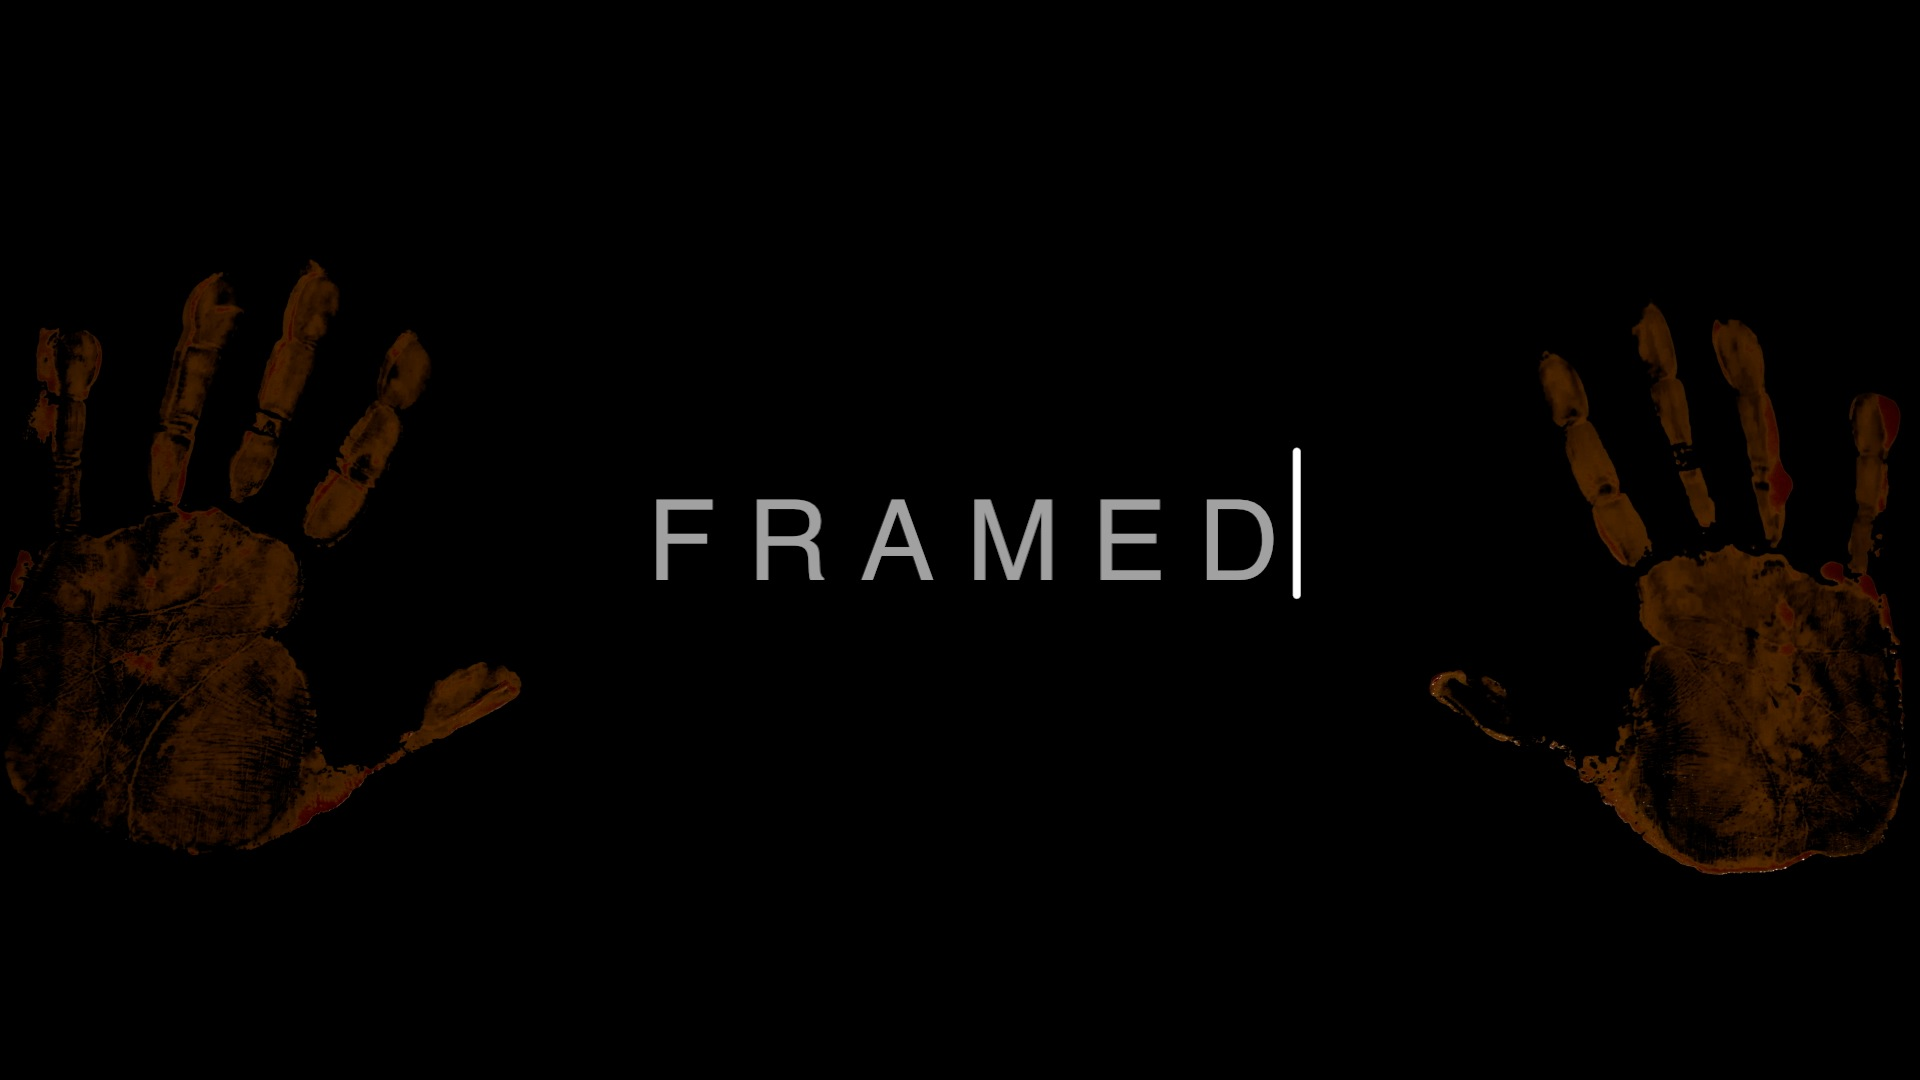 FRAMED, a new suspense/action web series created by Jose Mojica.